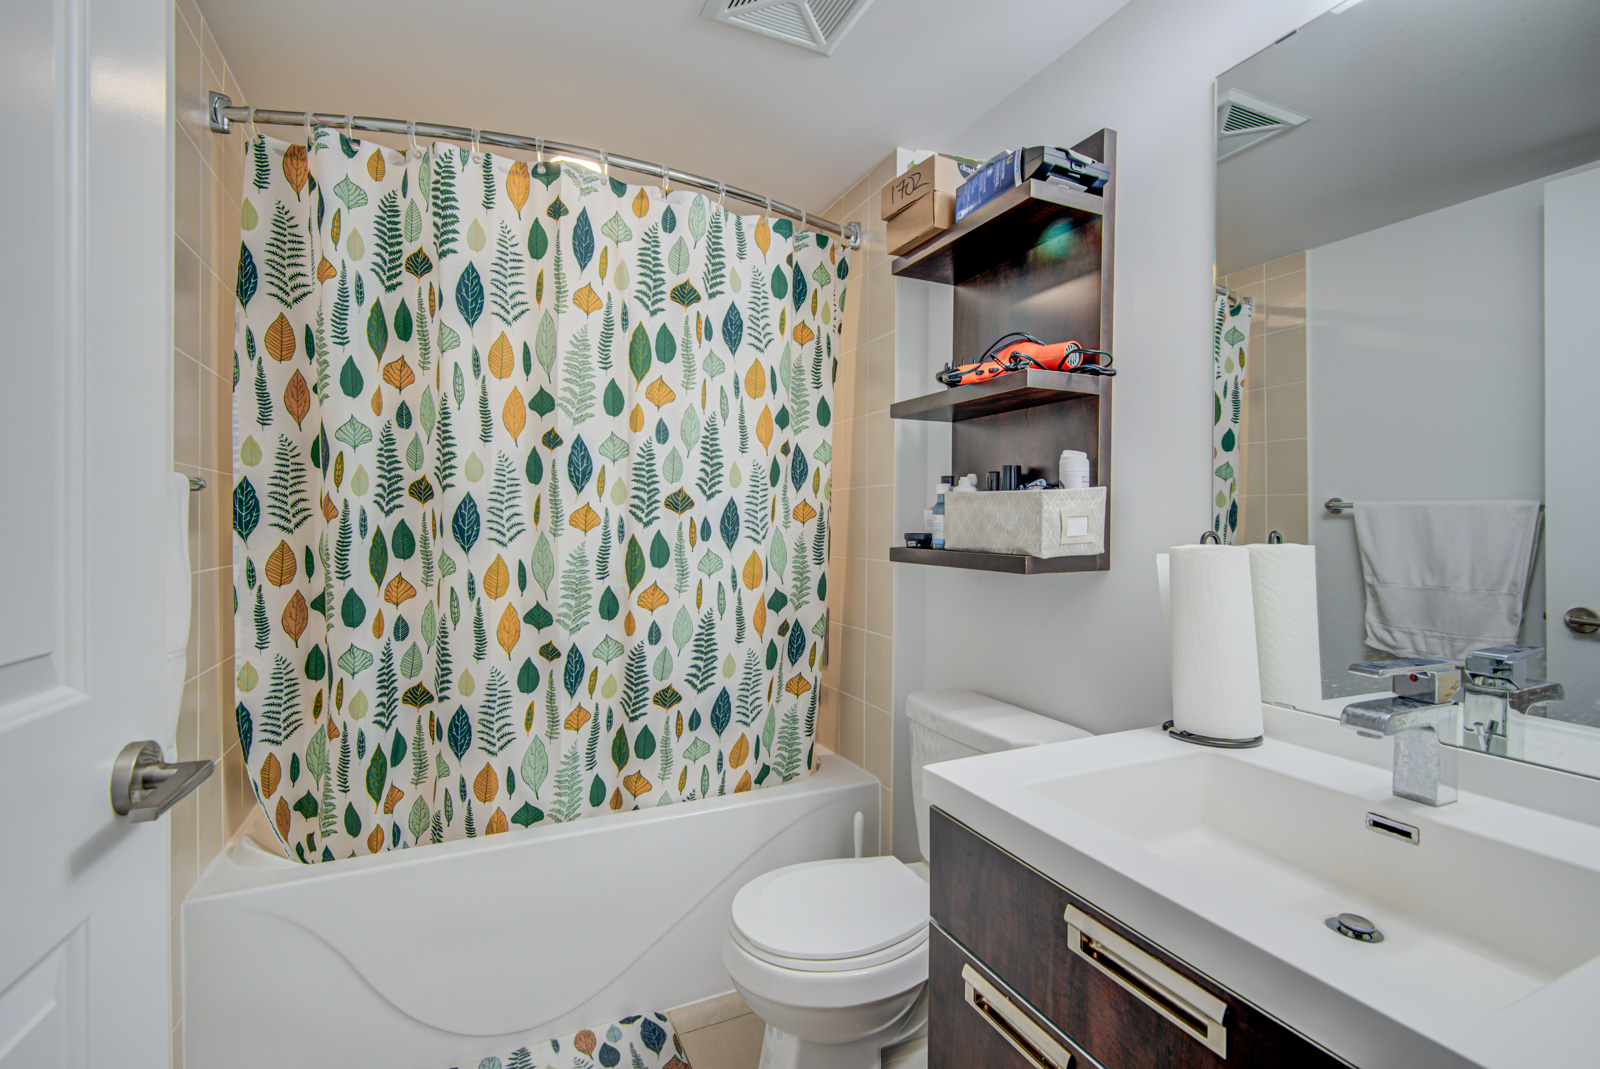 Bathroom with floral shower curtain, white tub and sink, large mirror and shelves with hairdryer and toiletries.